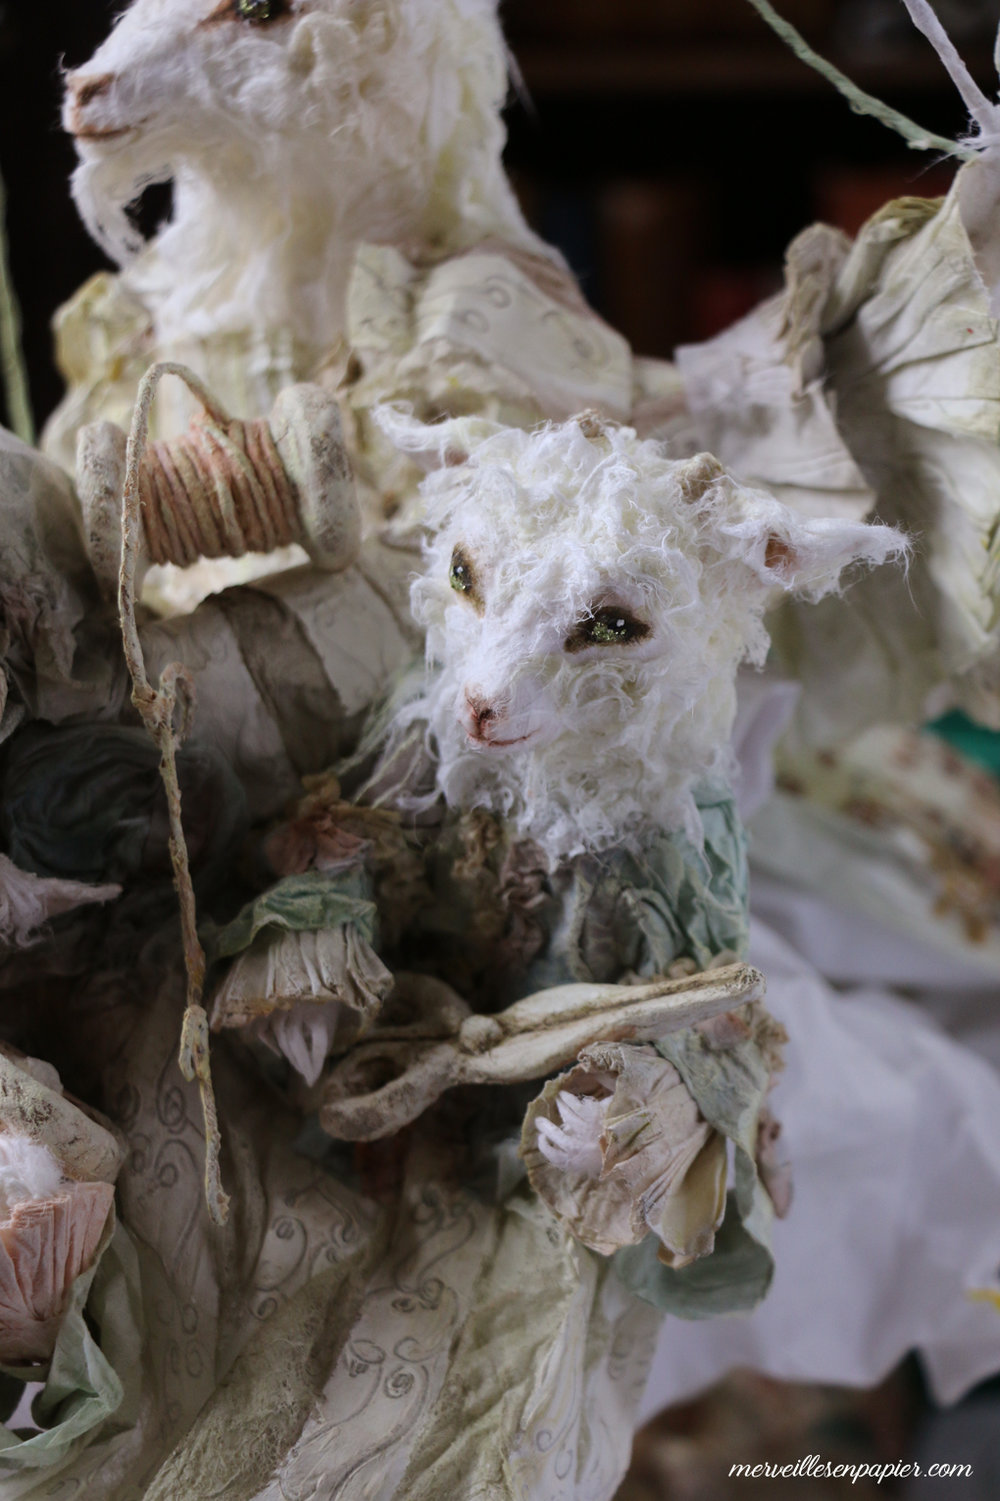 One of the Goat children  hidden under the mother's dress